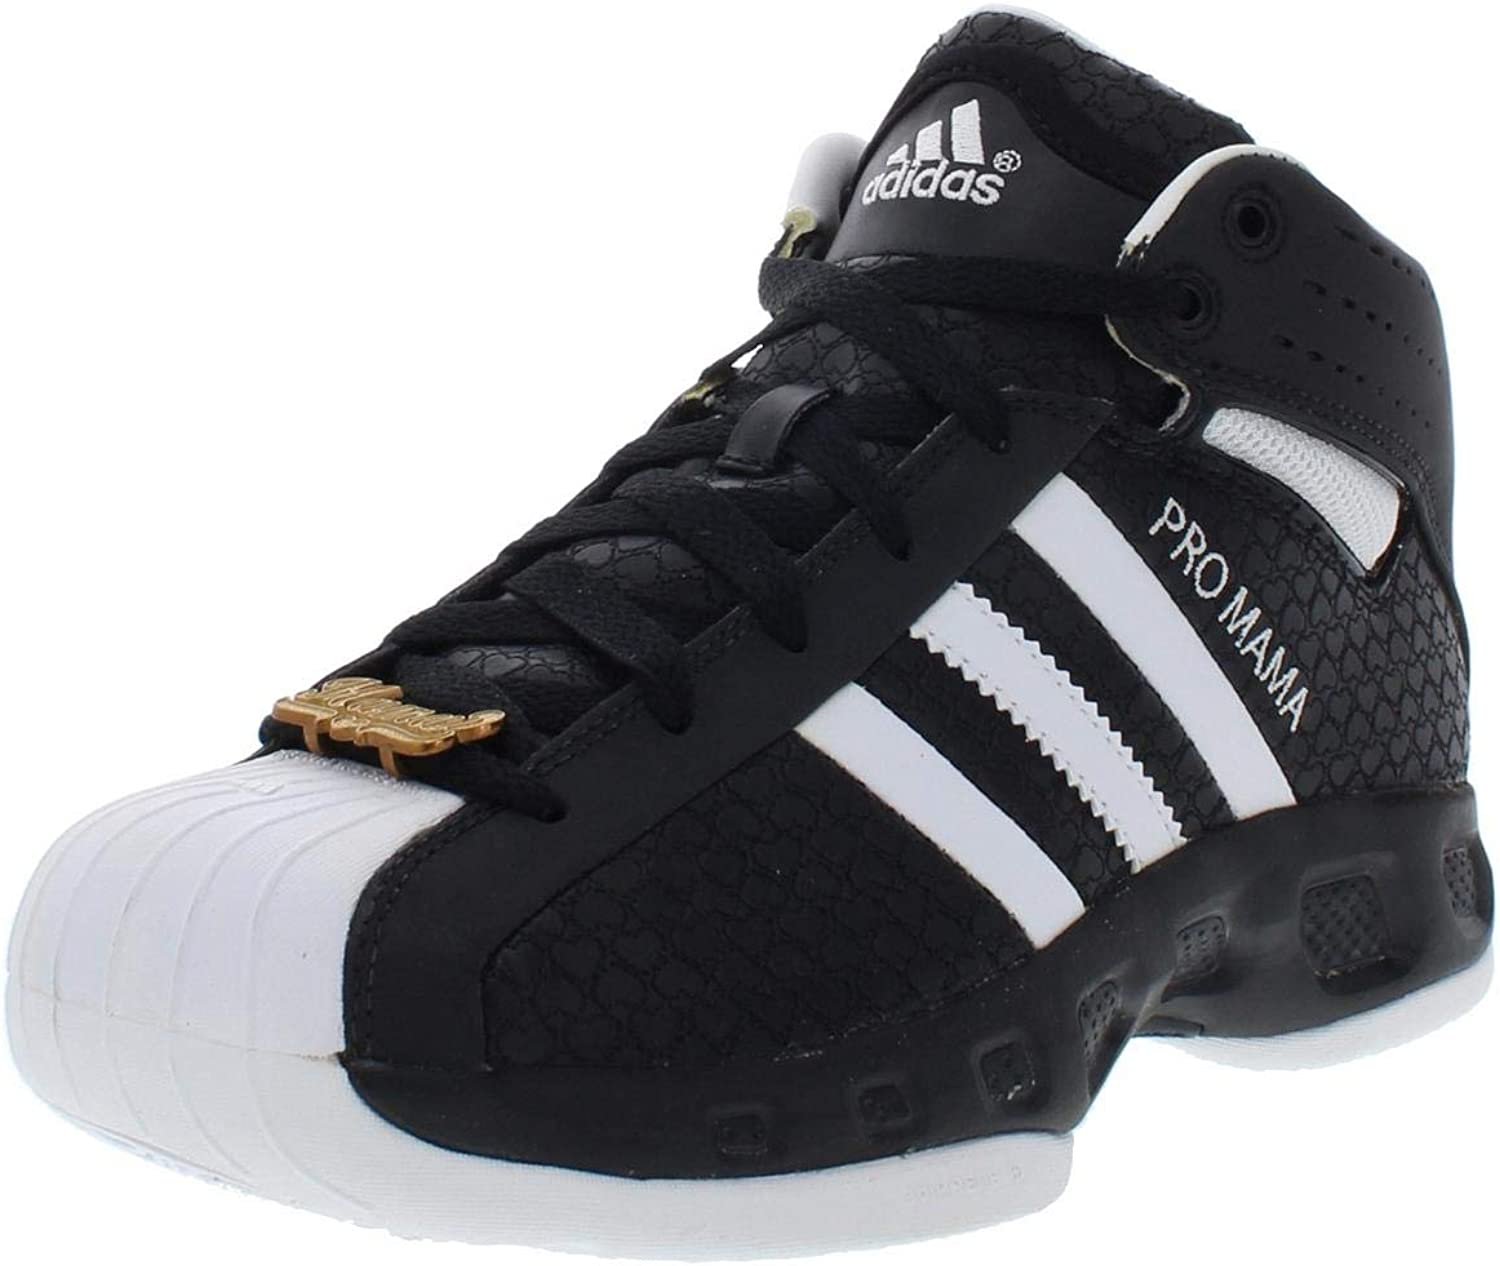 Adidas Sport Performance Womens Pro Model S Leather Basketball shoes